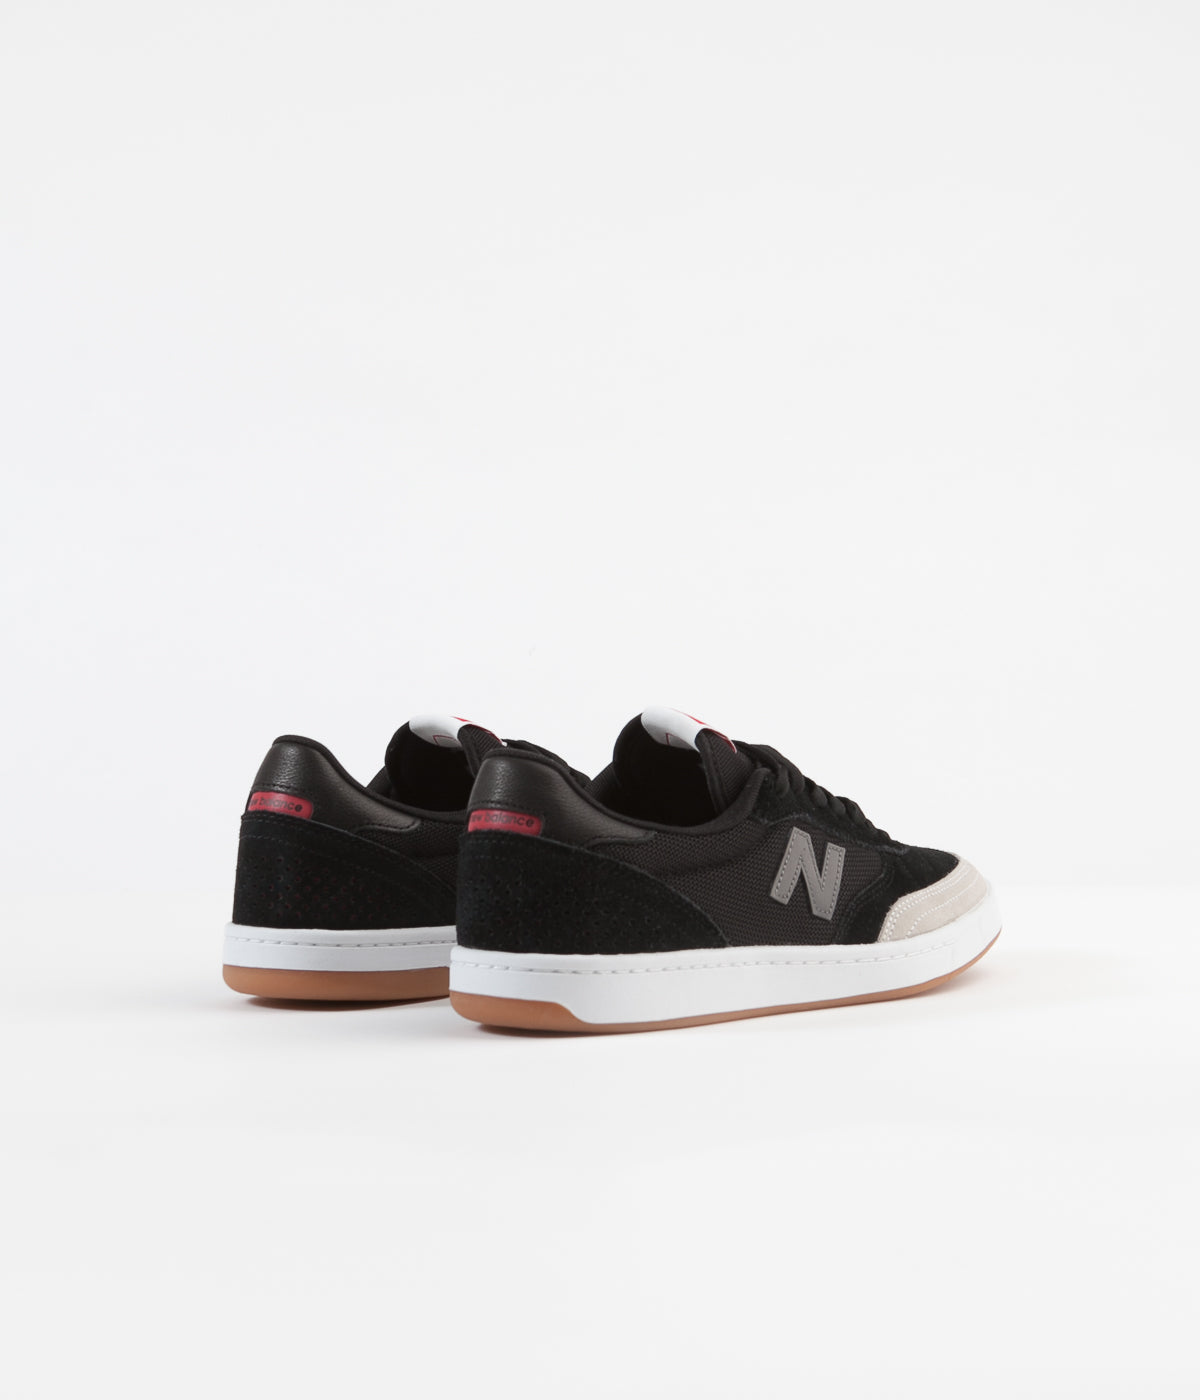 New Balance Numeric 440 Shoes - Black / Grey